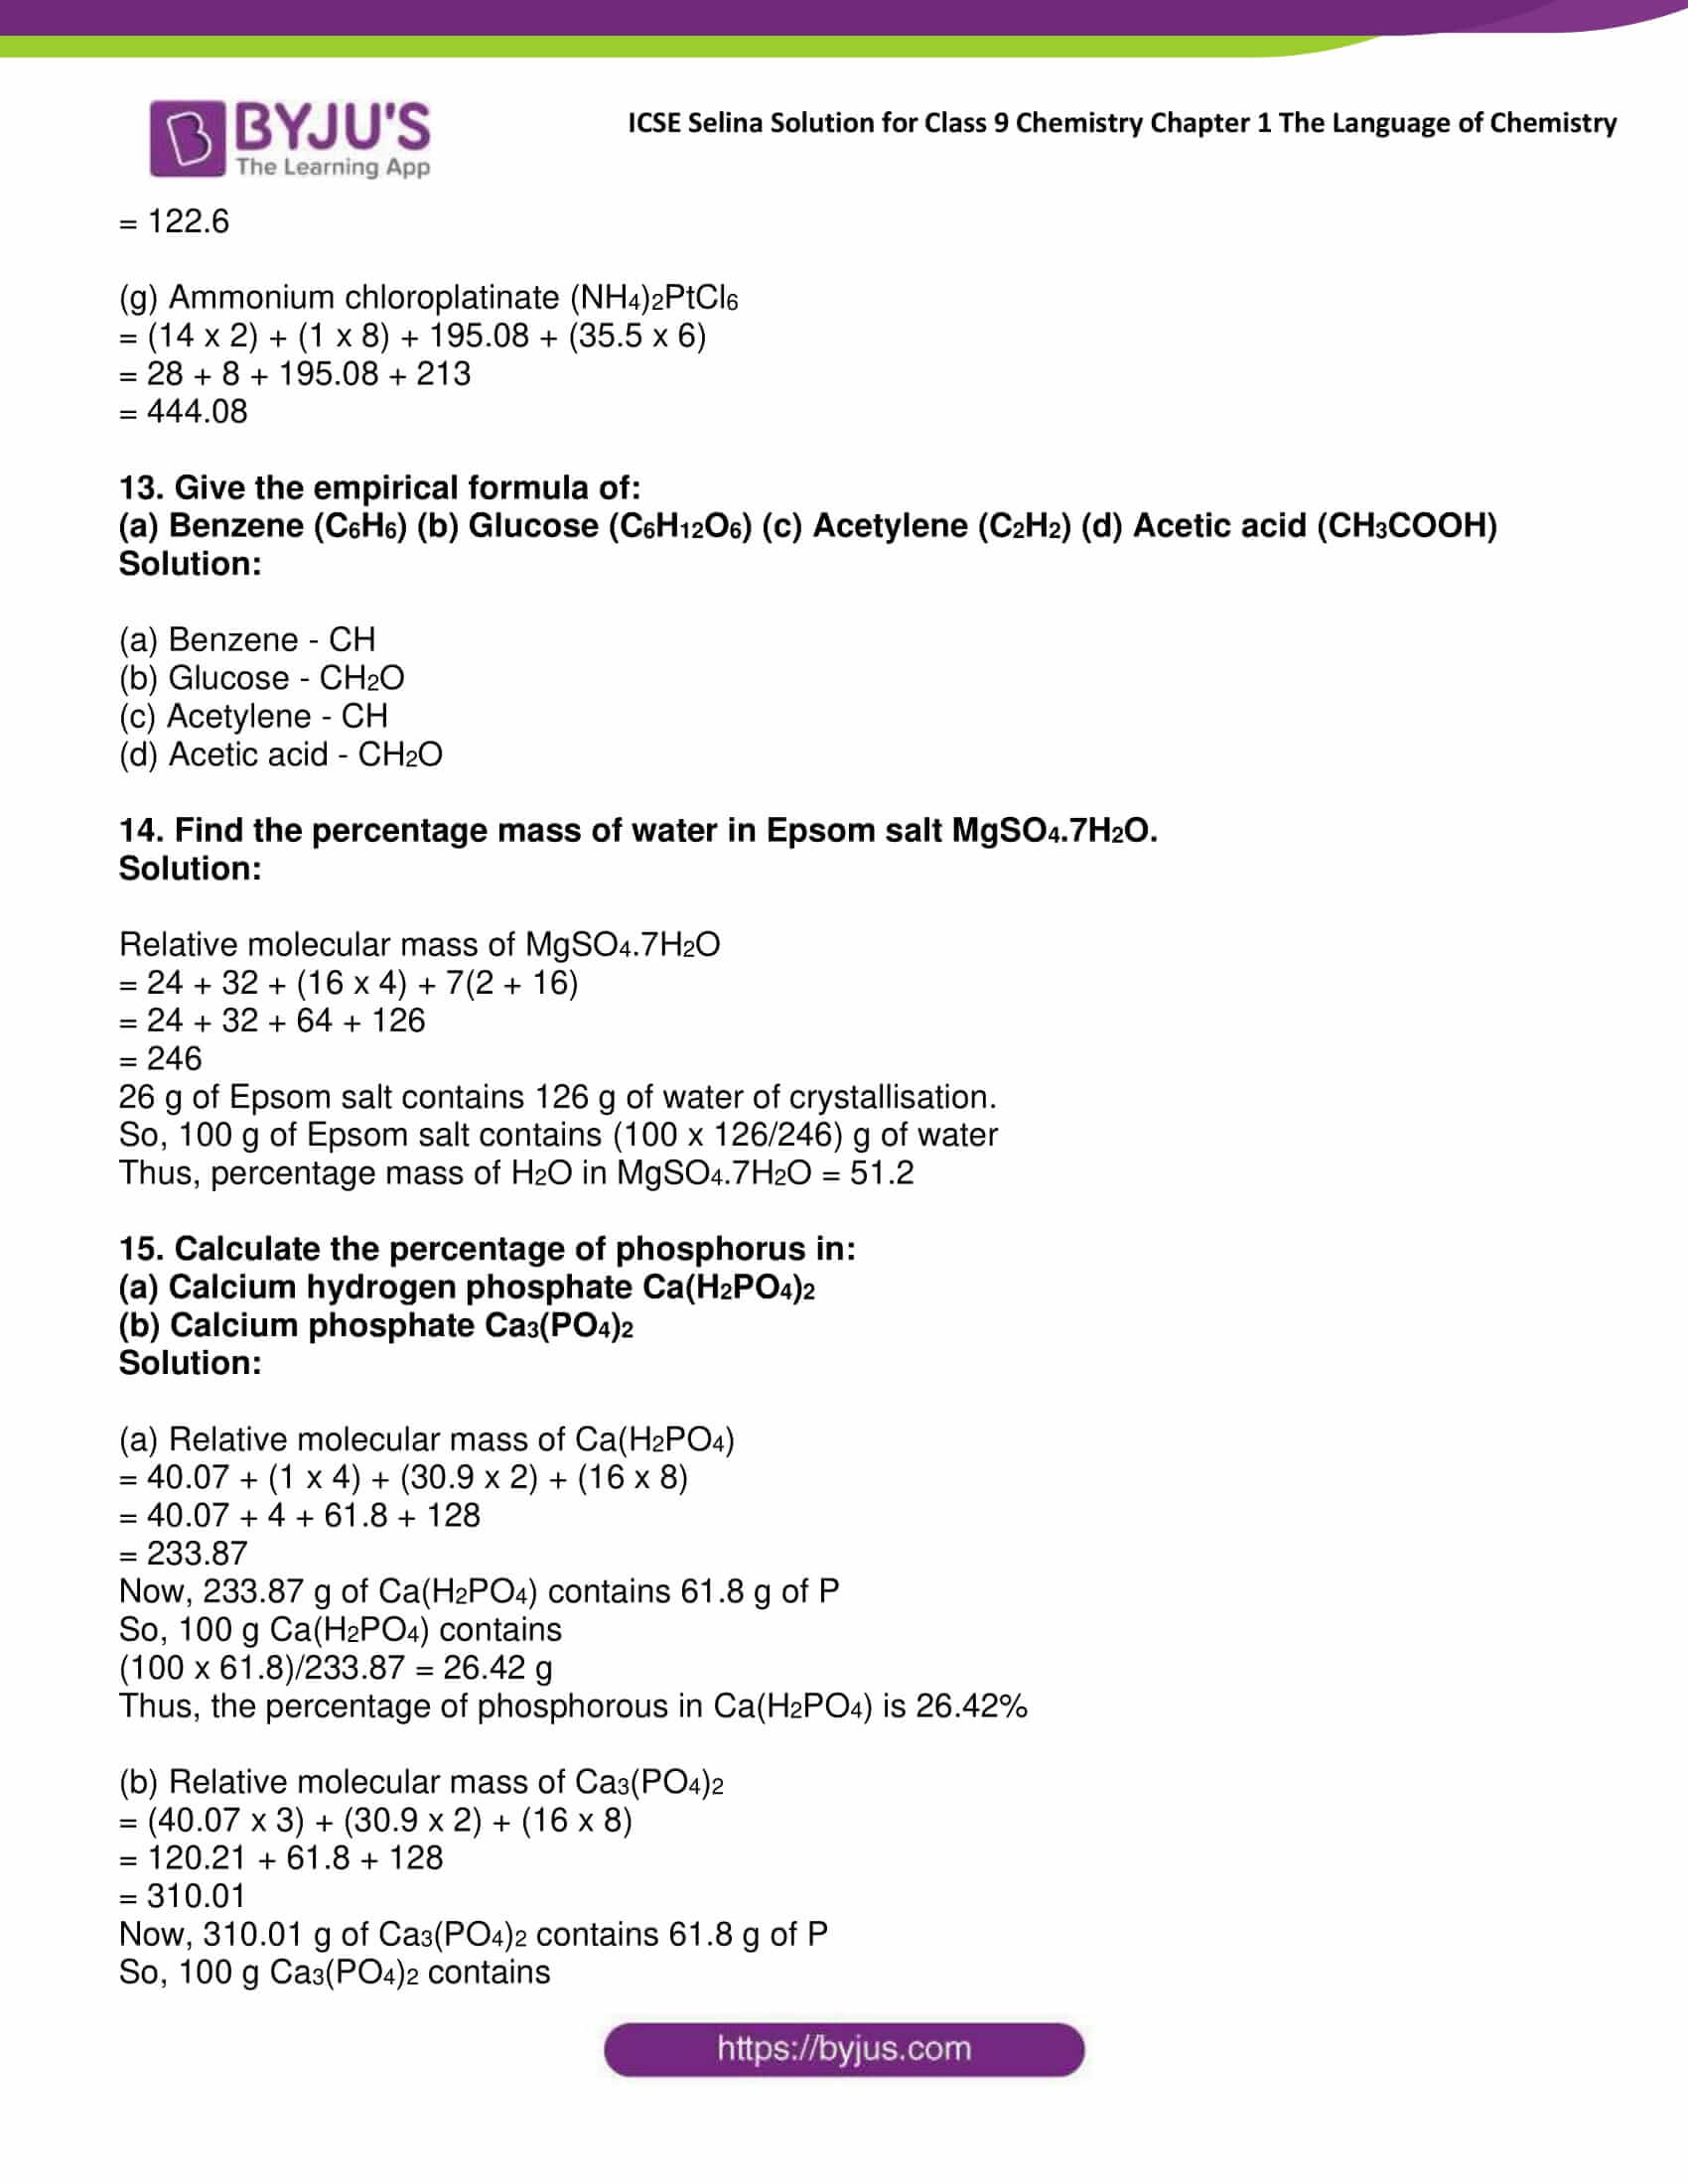 icse class 9 chemistry jul22 selina solutions chapter 1 the language of chemistry 17